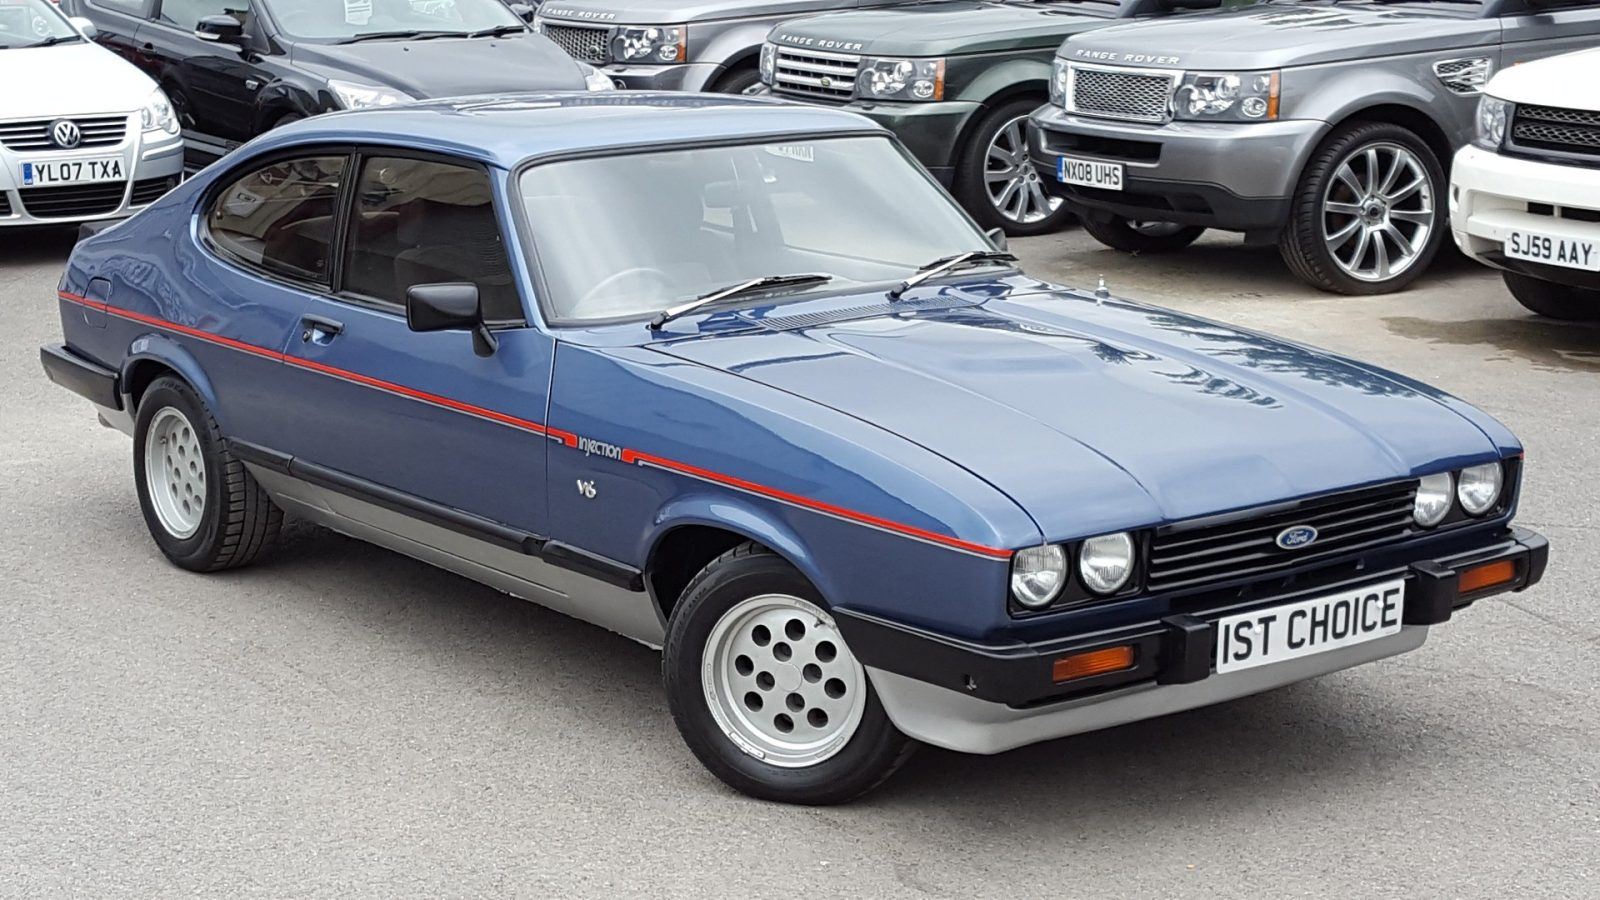 Ford Capri (Blue)